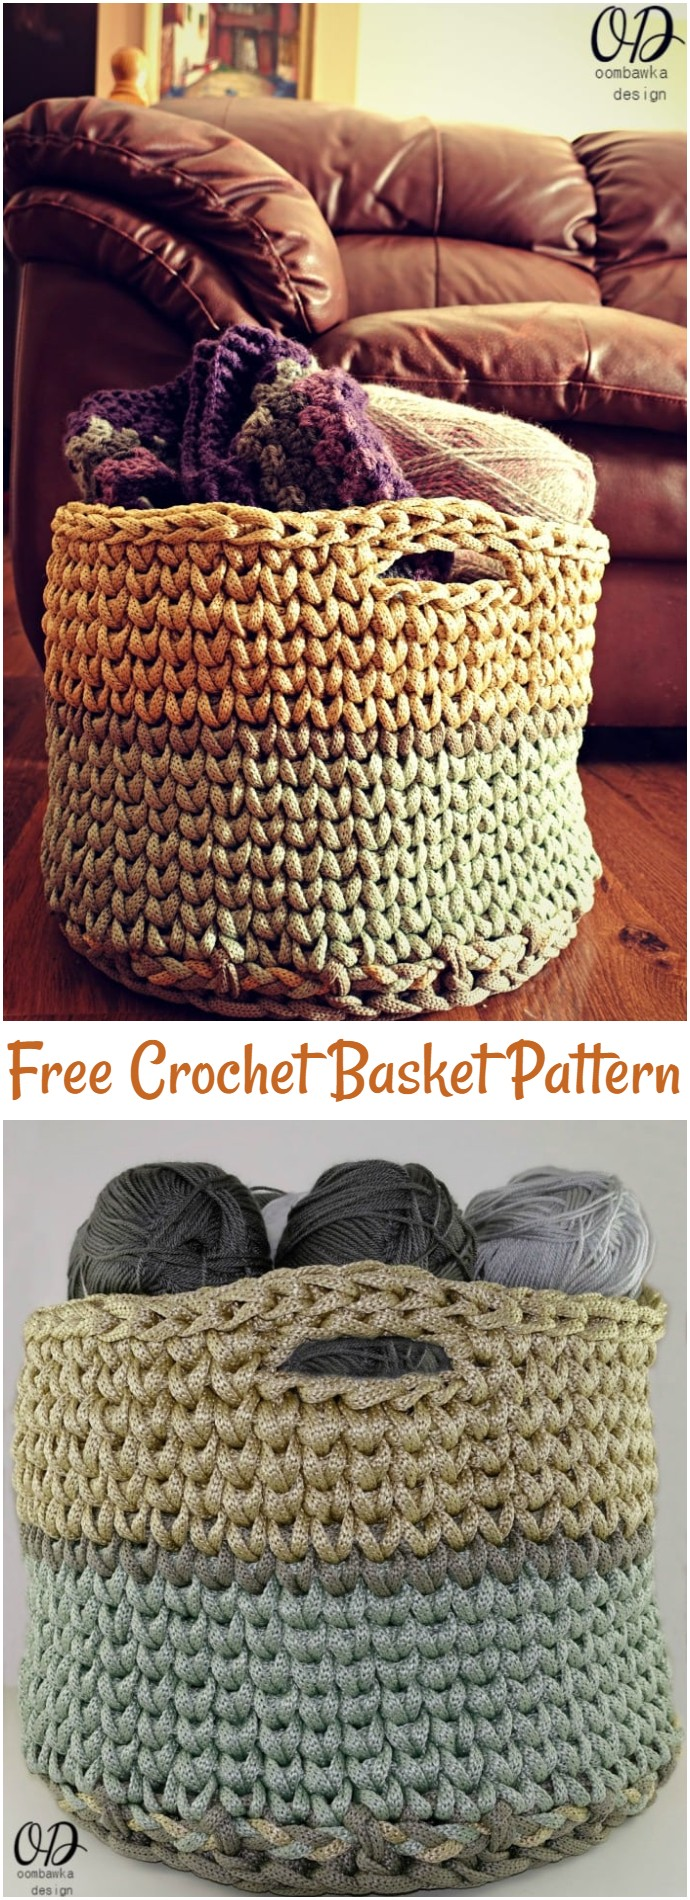 Your Giant Yarn Basket Free Crochet Pattern